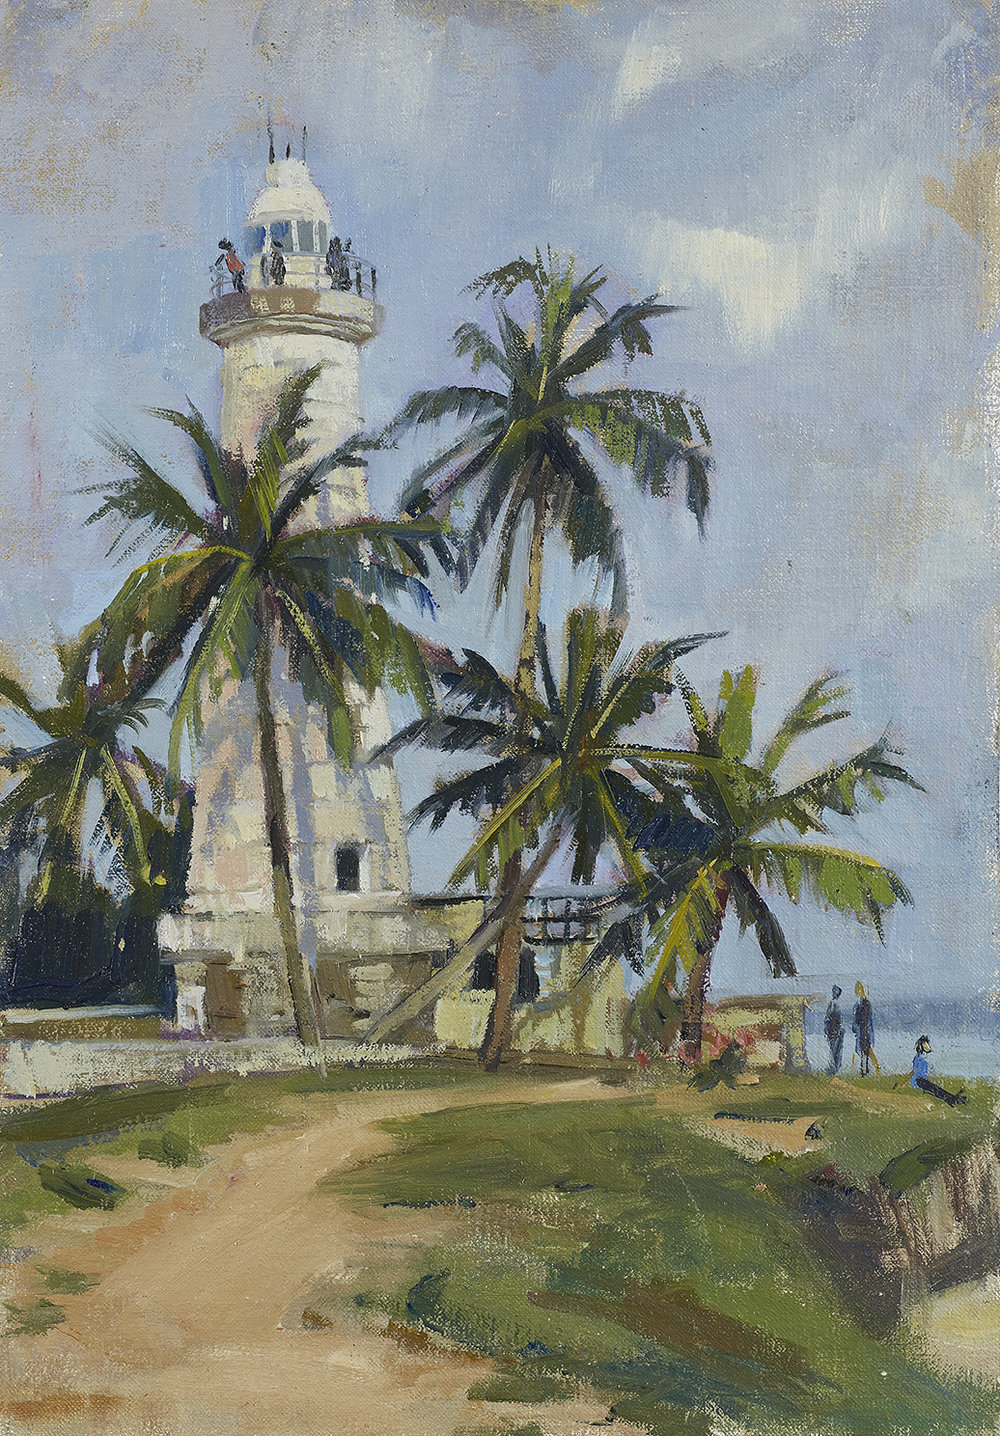 The Lighthouse in Galle